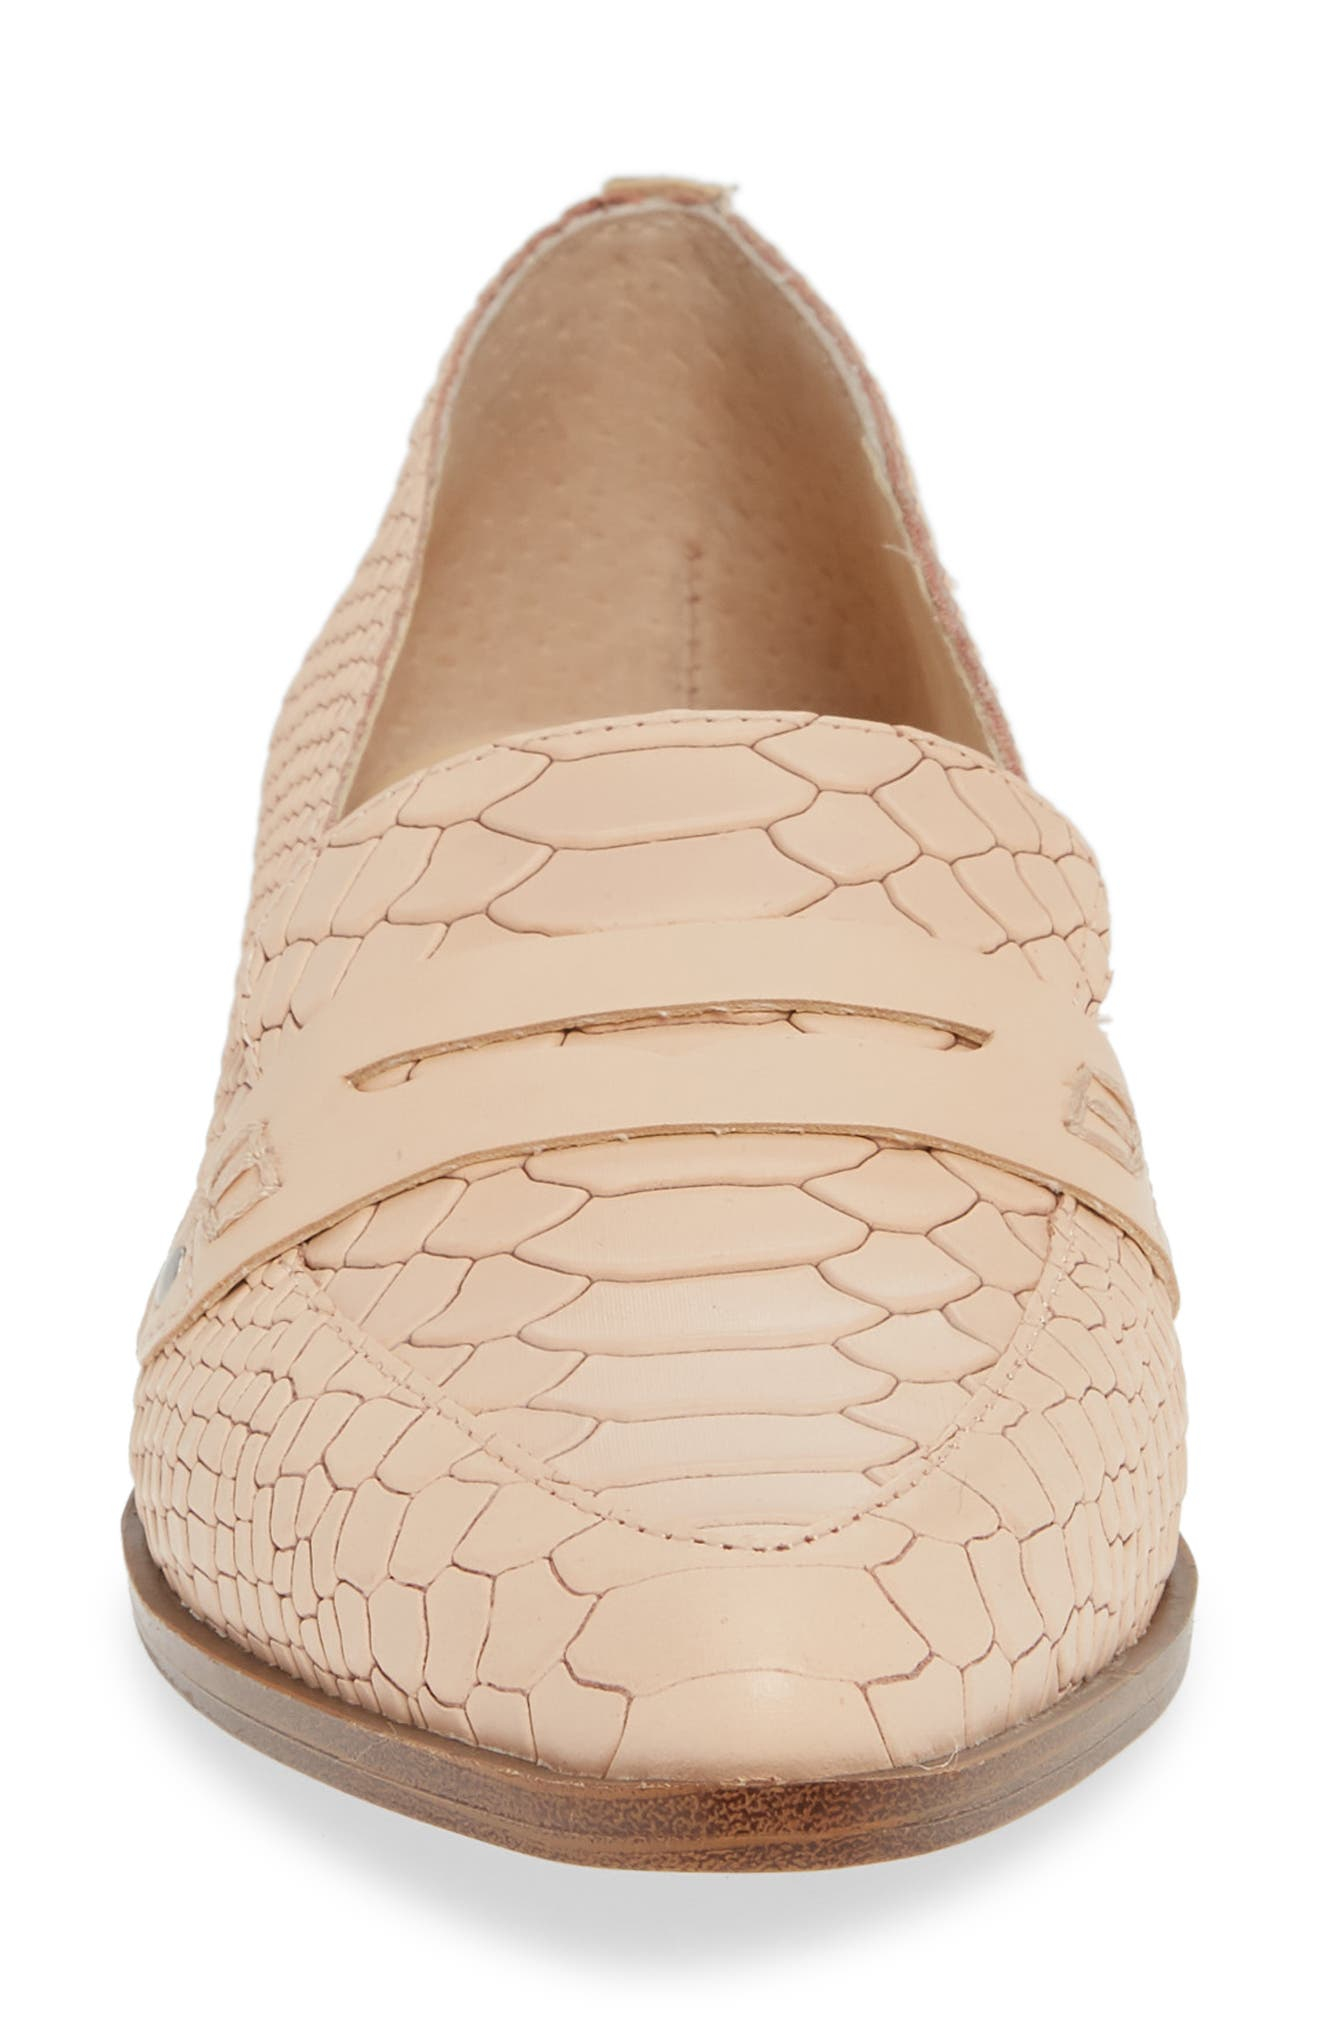 SOLE SOCIETY, Jessica Smoking Slipper, Alternate thumbnail 4, color, BISQUE LEATHER